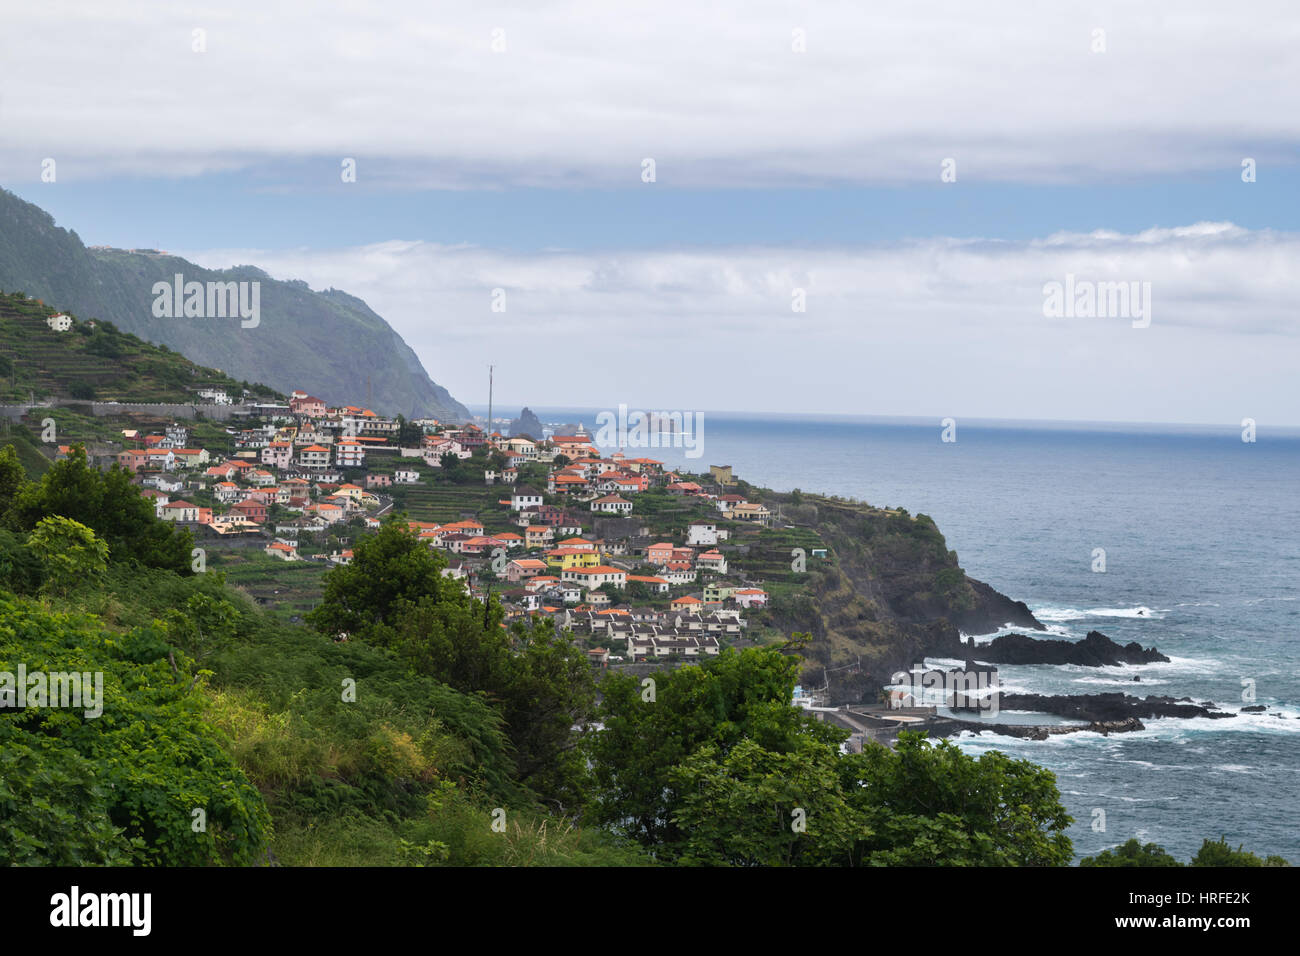 Coastline near Ponta Delgada, Madeira, Portugal, Europe Stock Photo